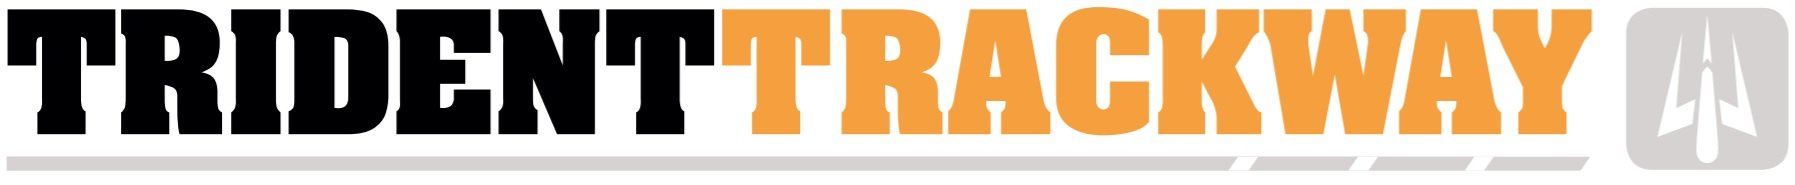 Trident Trackway House logo click to visit site